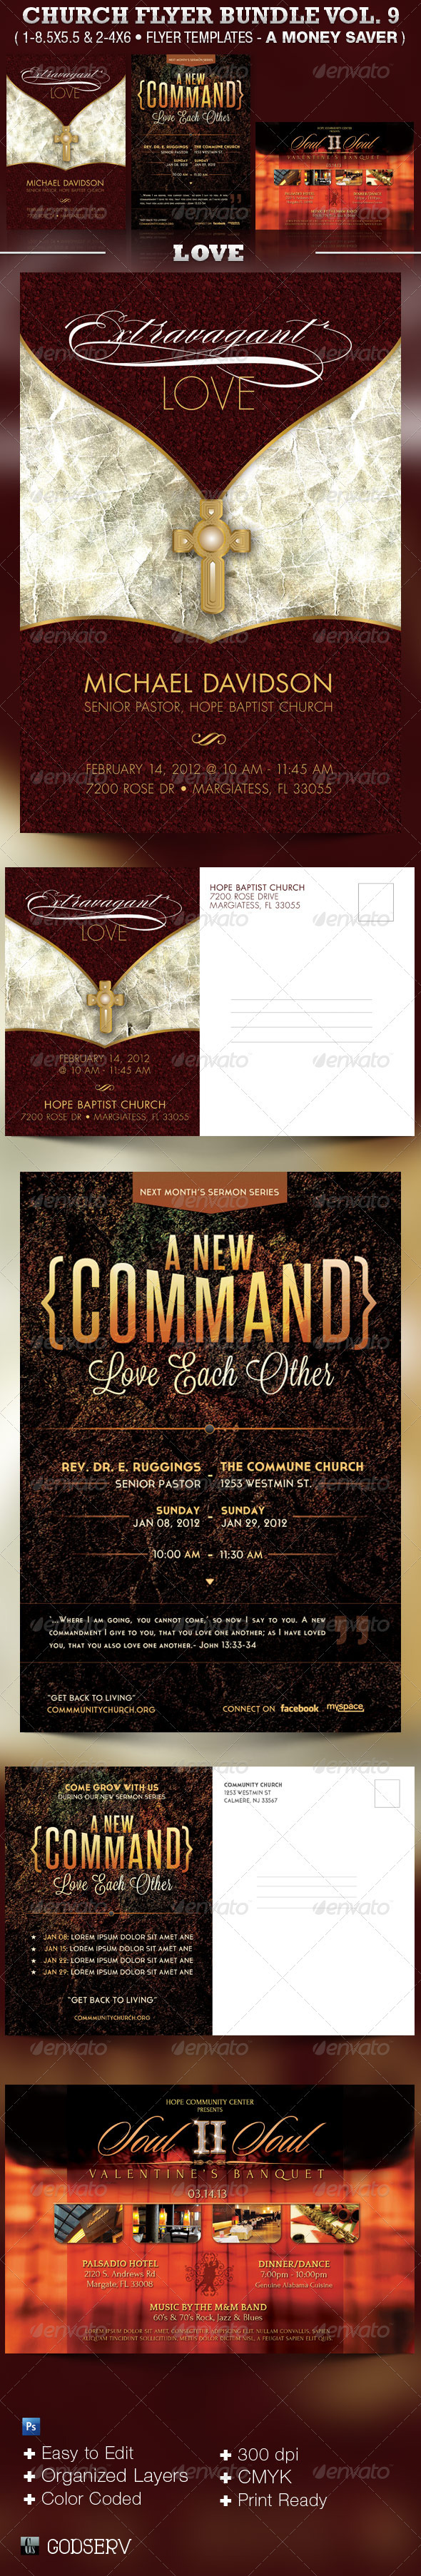 Church Flyer Template Bundle Vol 9 - Love - Church Flyers